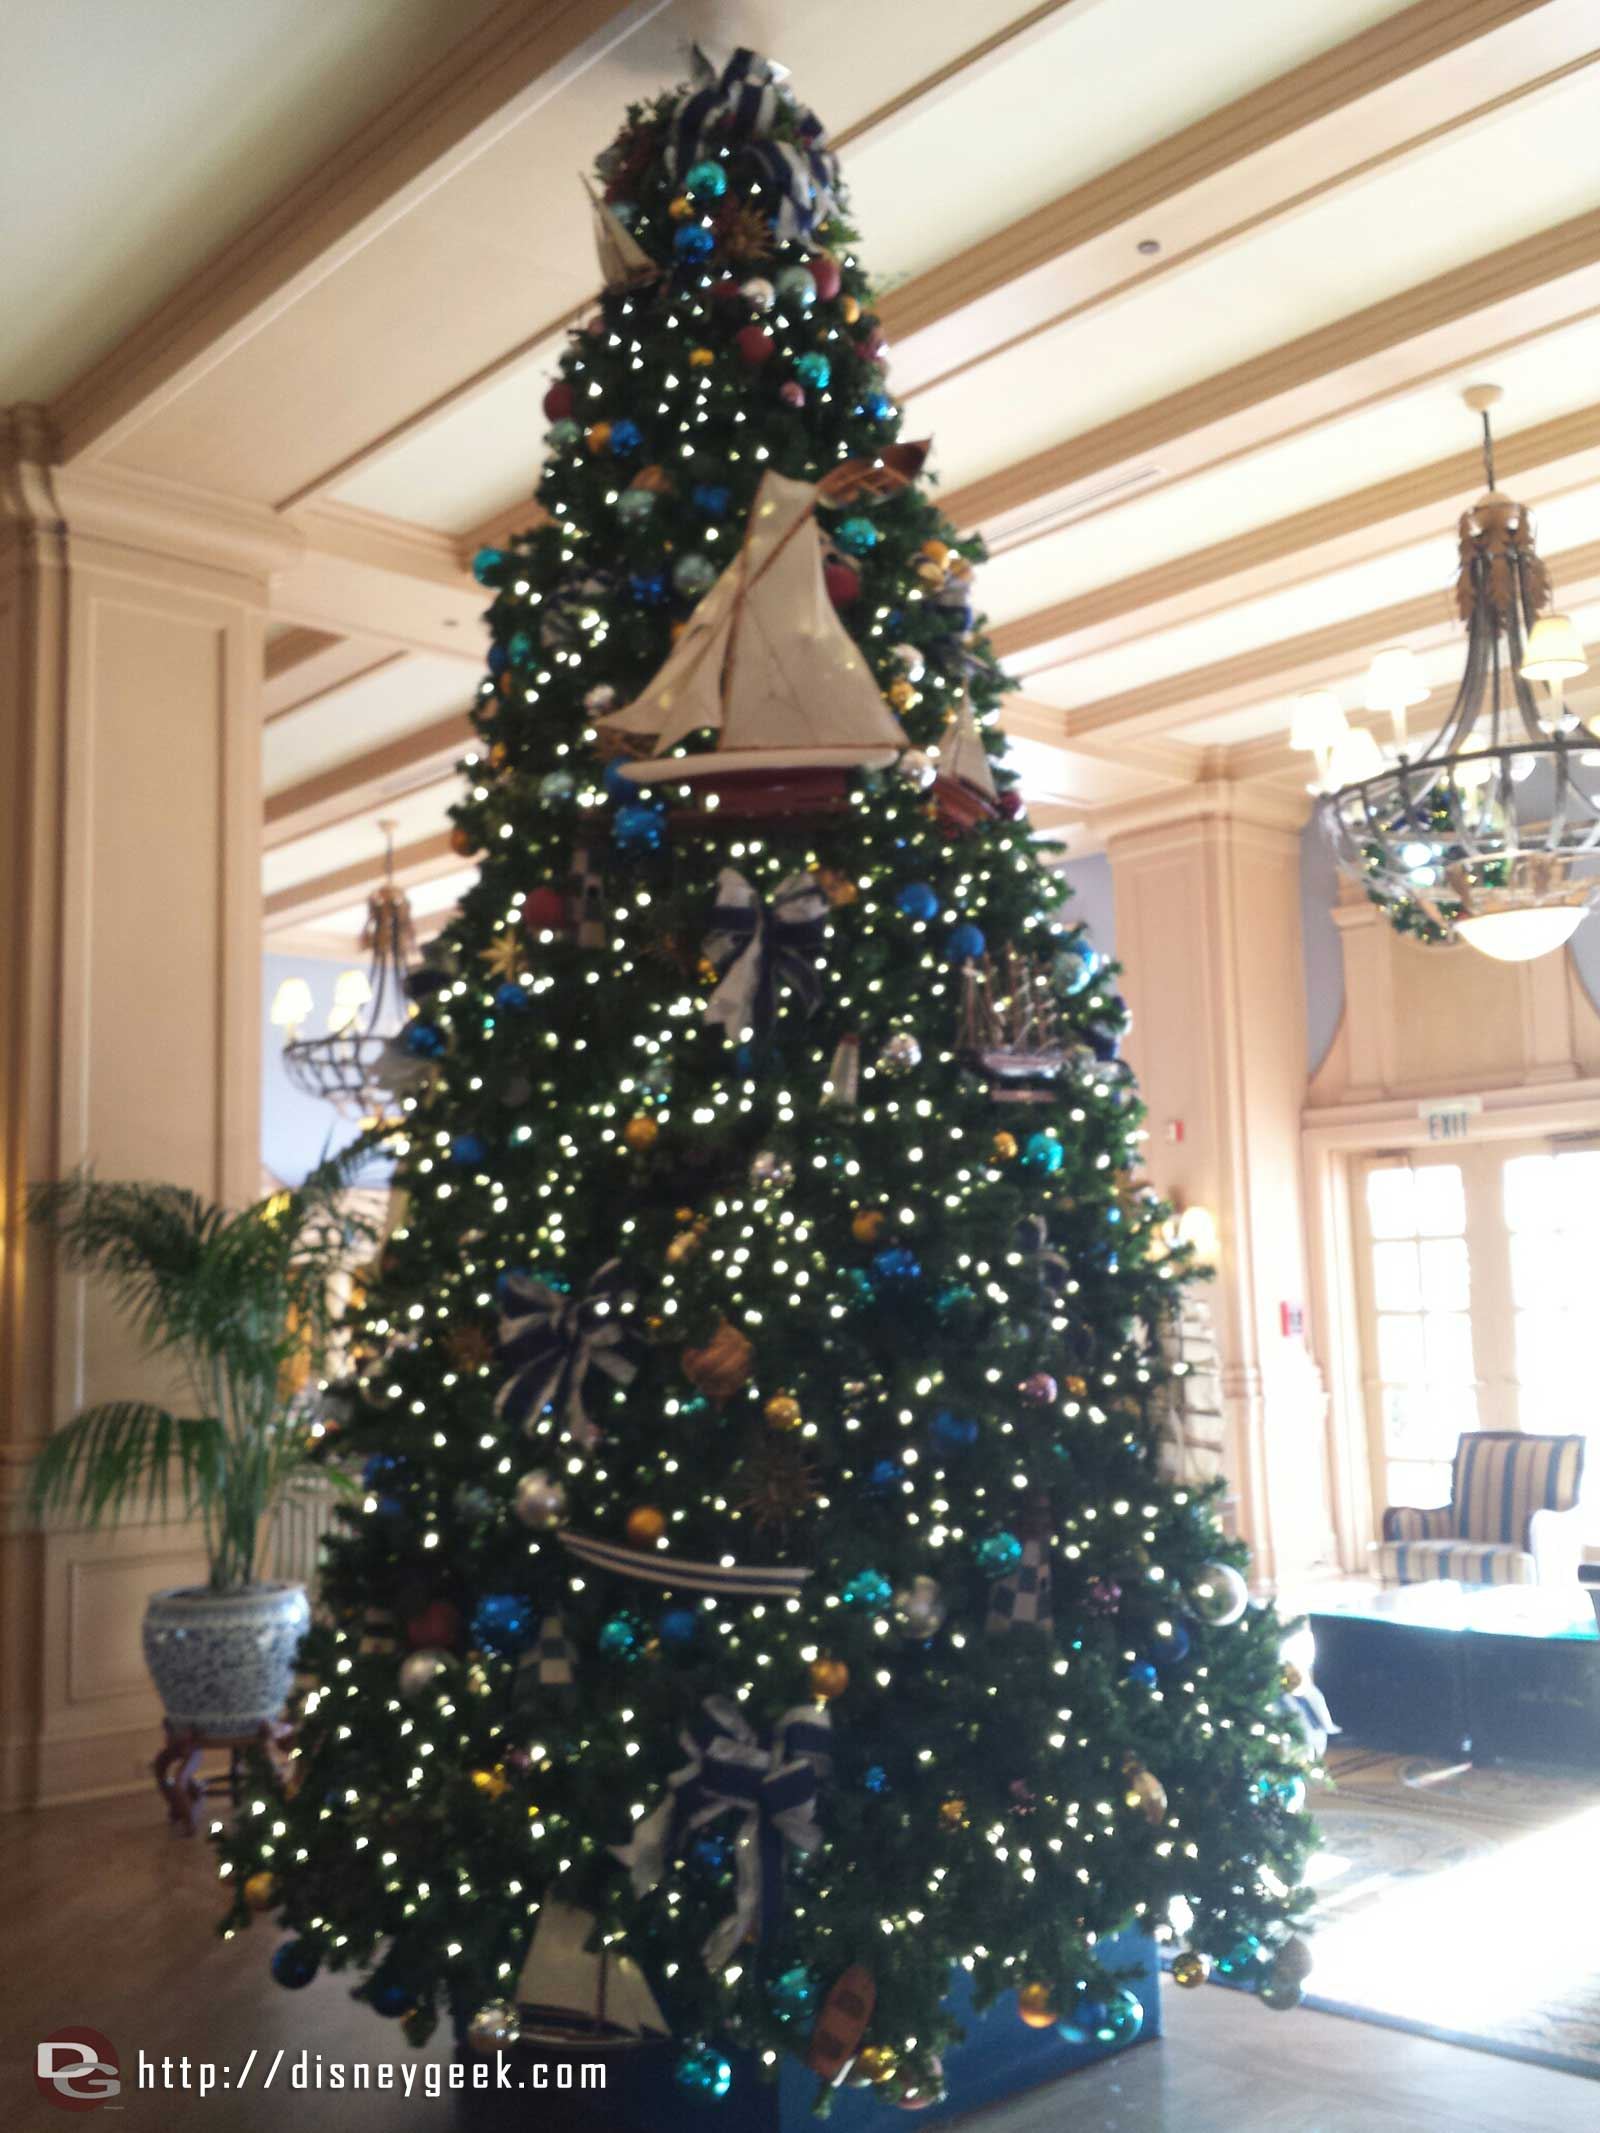 Disney's Yacht Club lobby Christmas tree